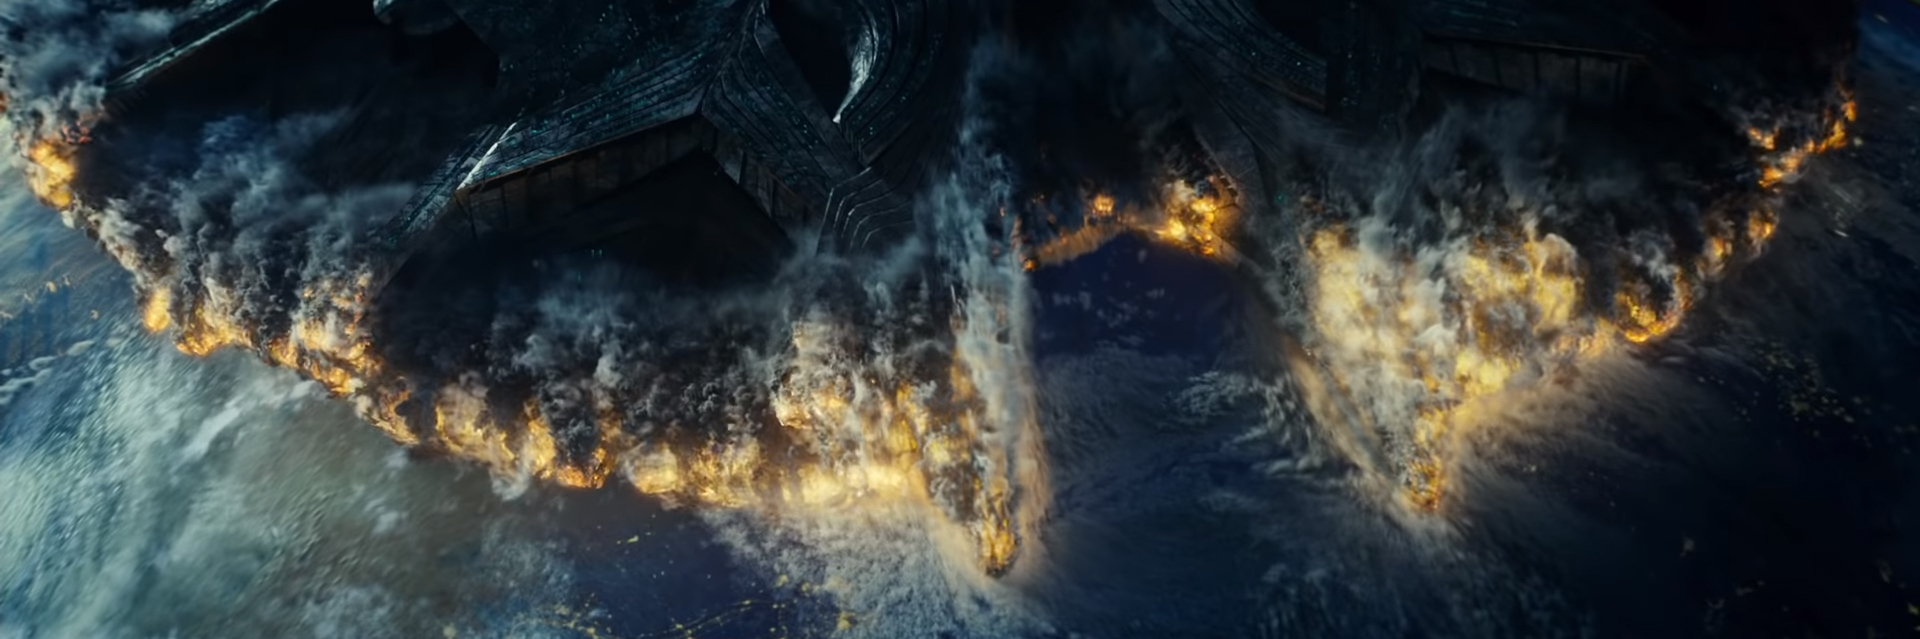 Independence Day Resurgence. Image Credit: 20th Century Fox.